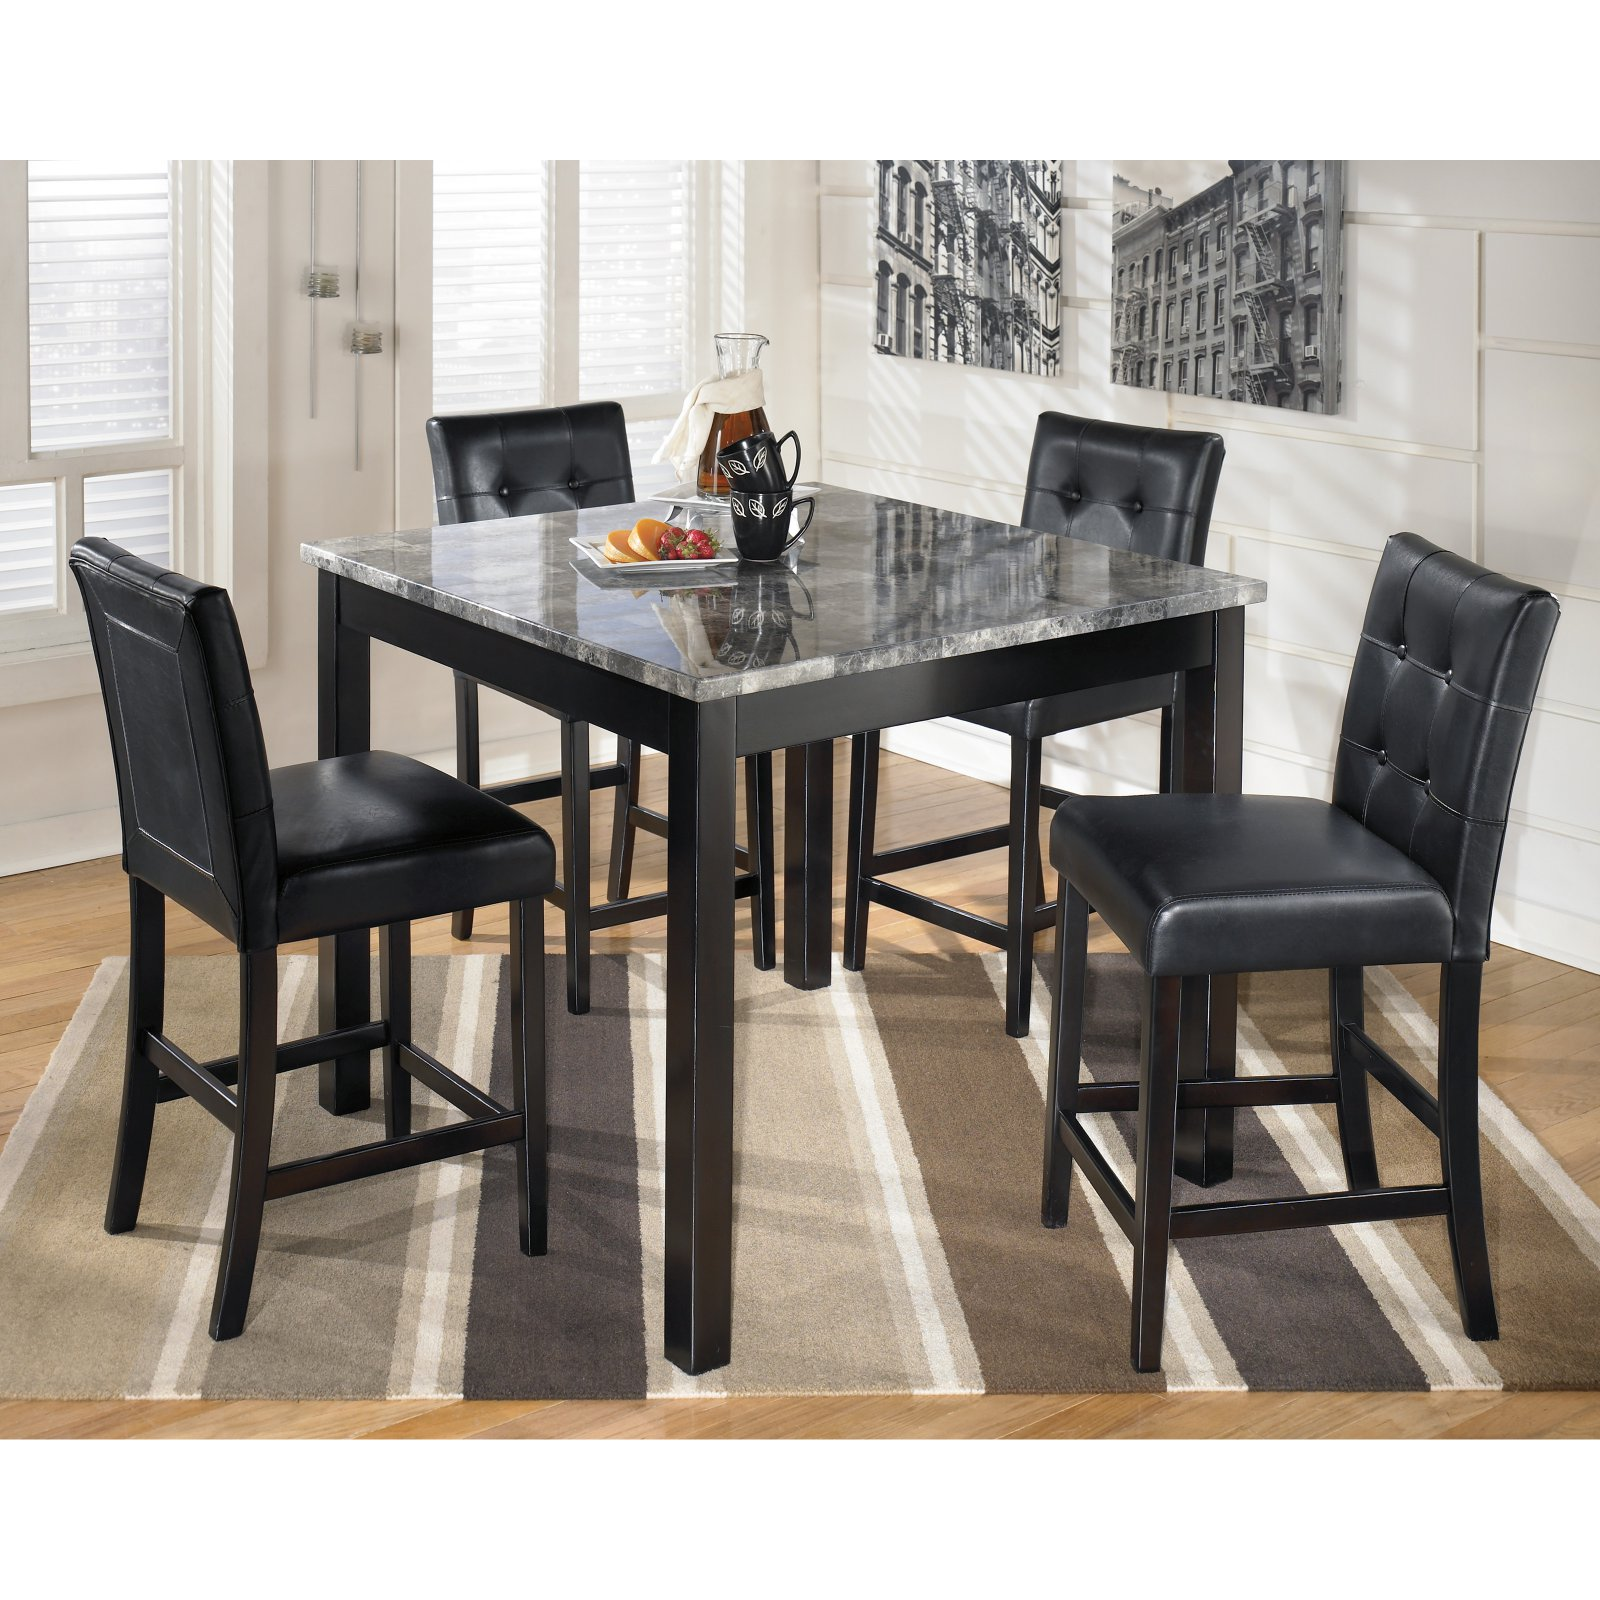 Beau Signature Design By Ashley Maysville 5 Piece Counter Height Dining Table Set